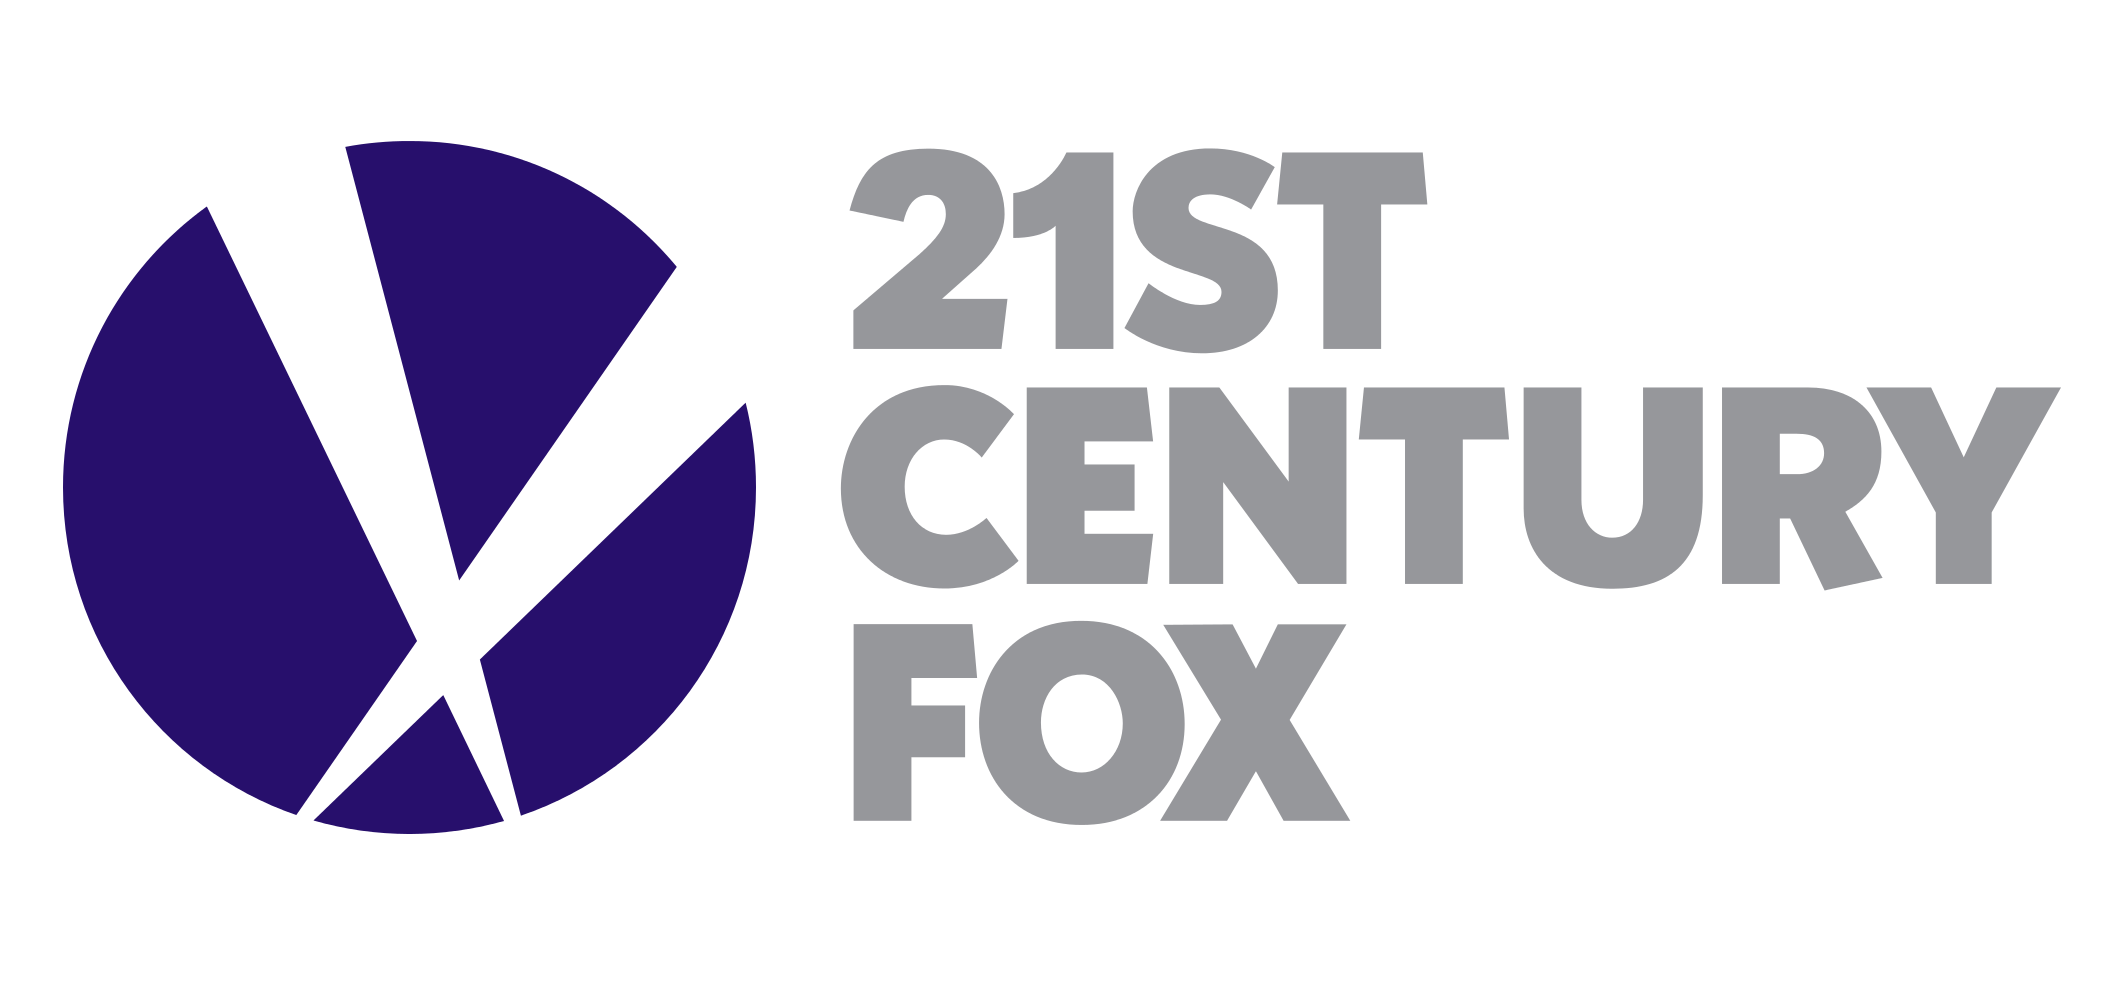 21st century fox logo png image purepng free transparent cc0 png rh purepng com century 21 logos in jpg century 21 logos and graphics